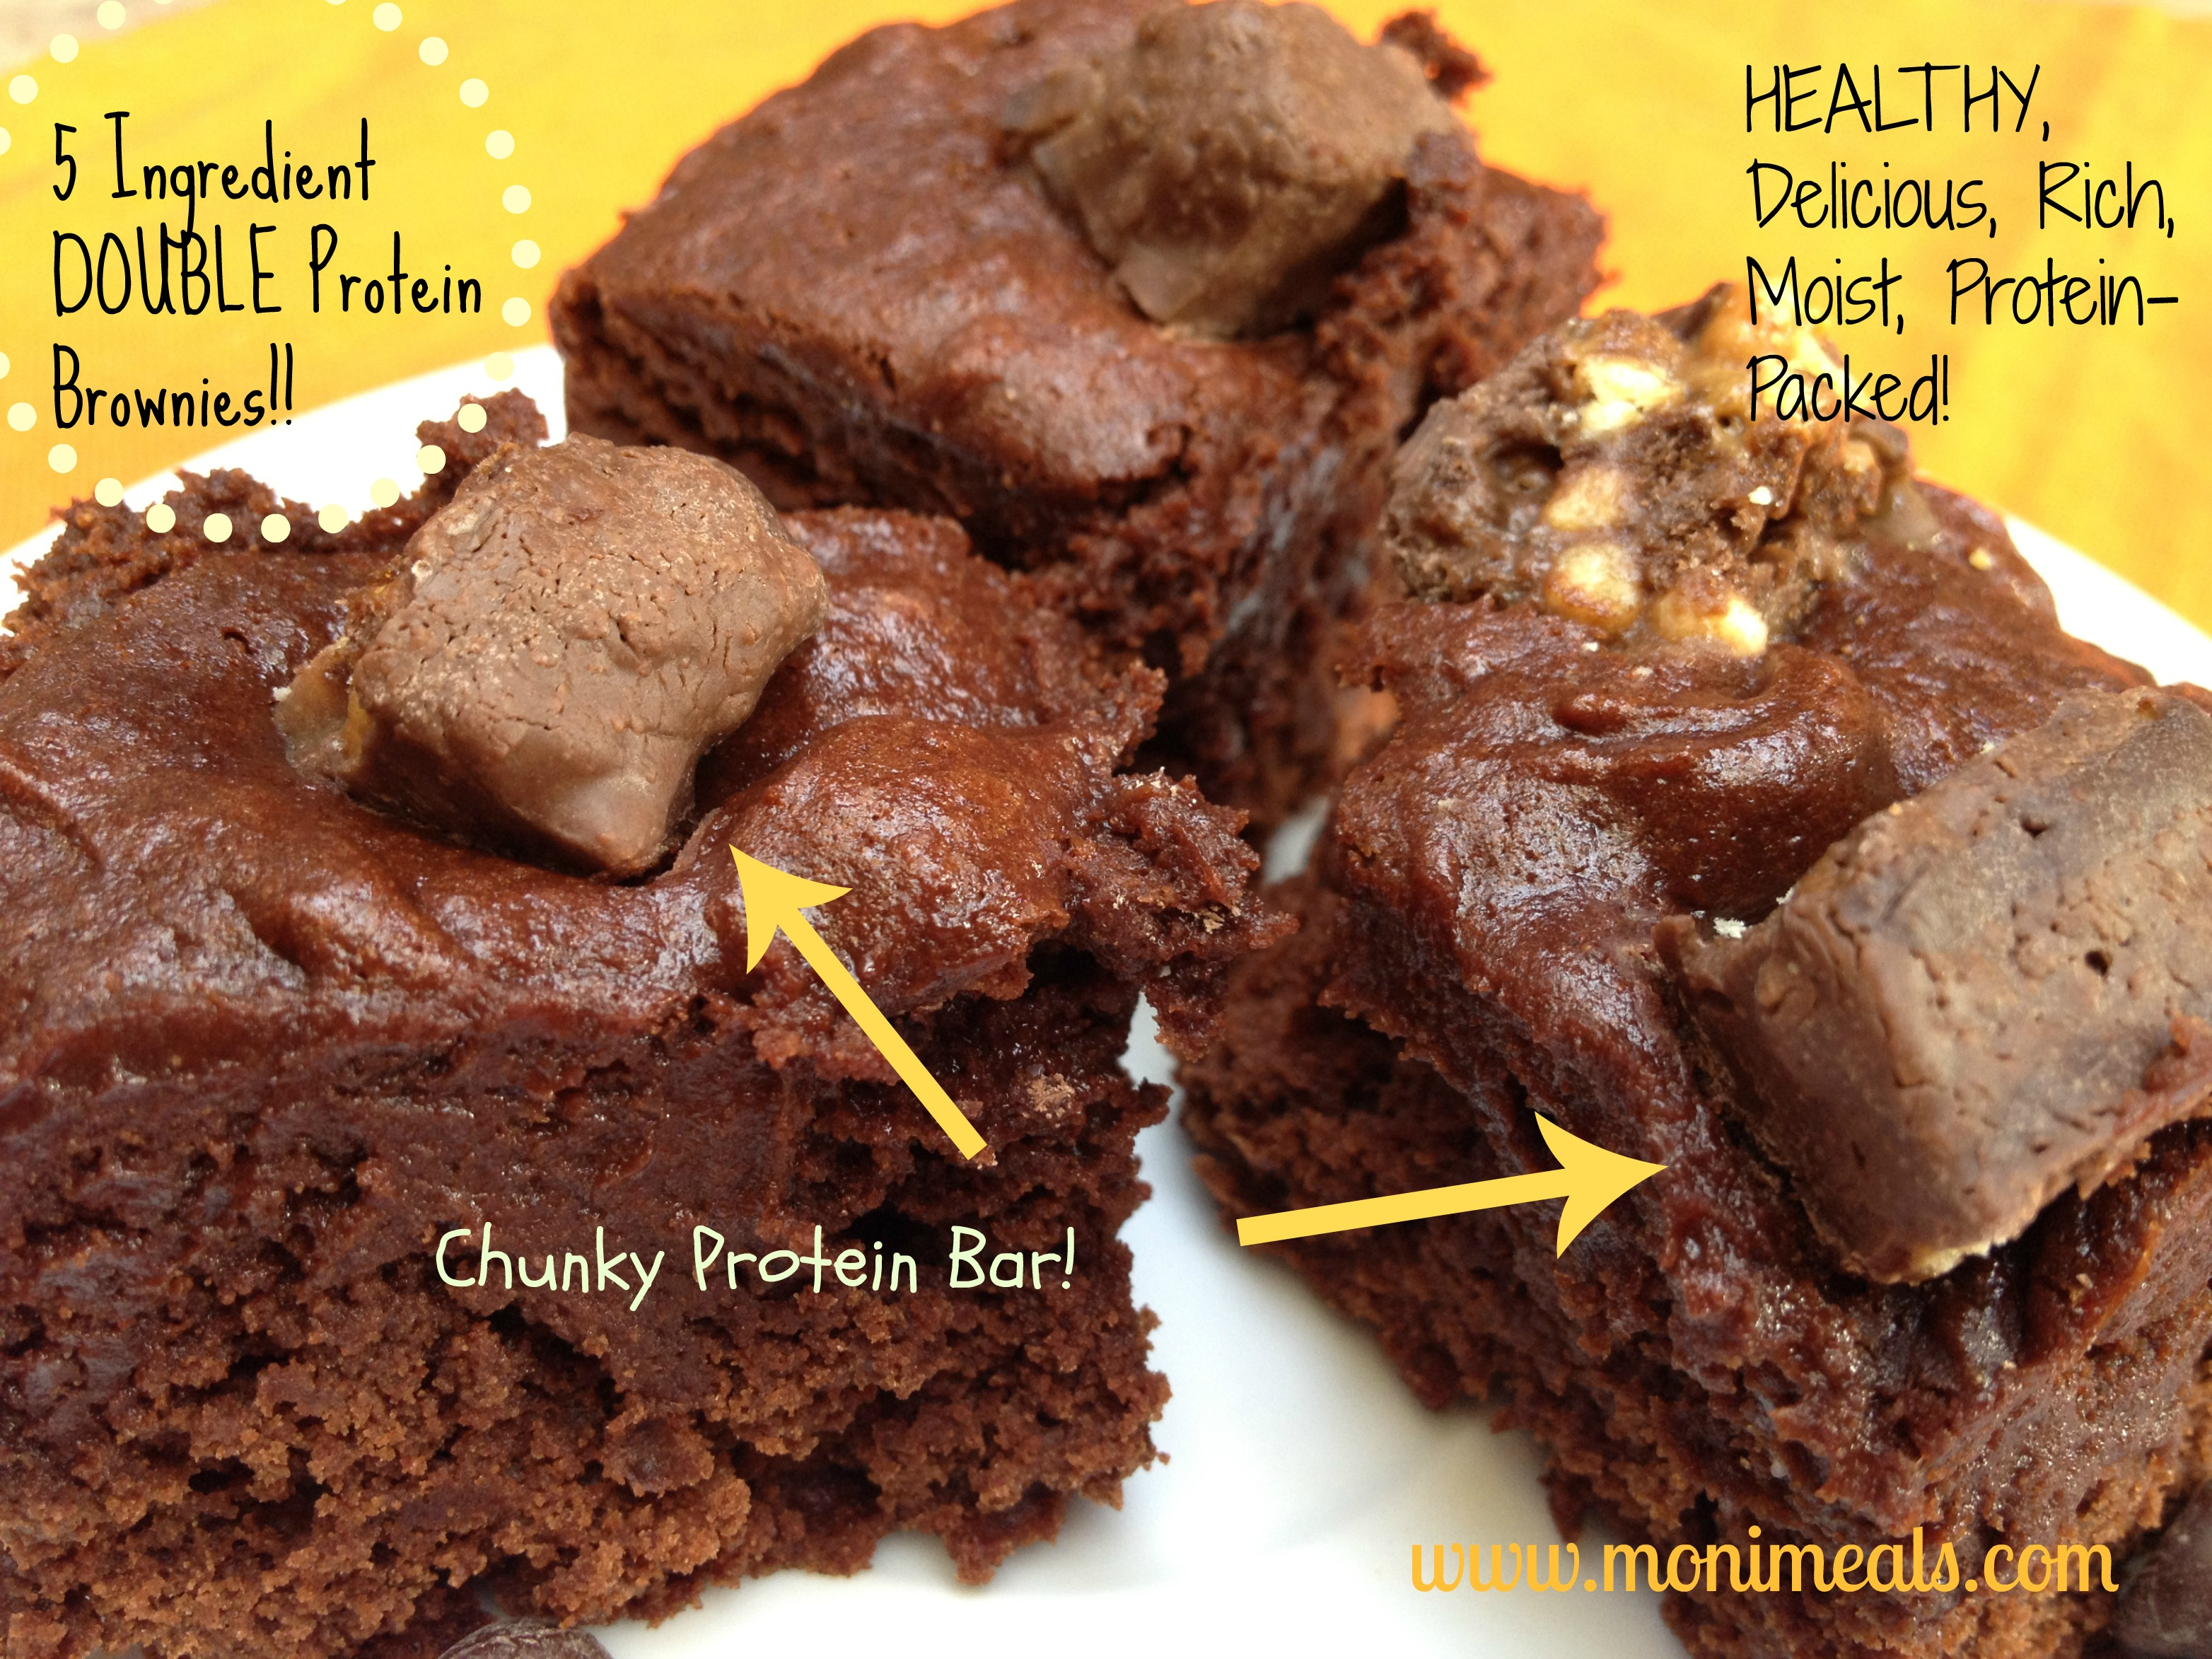 Double Protein Brownies